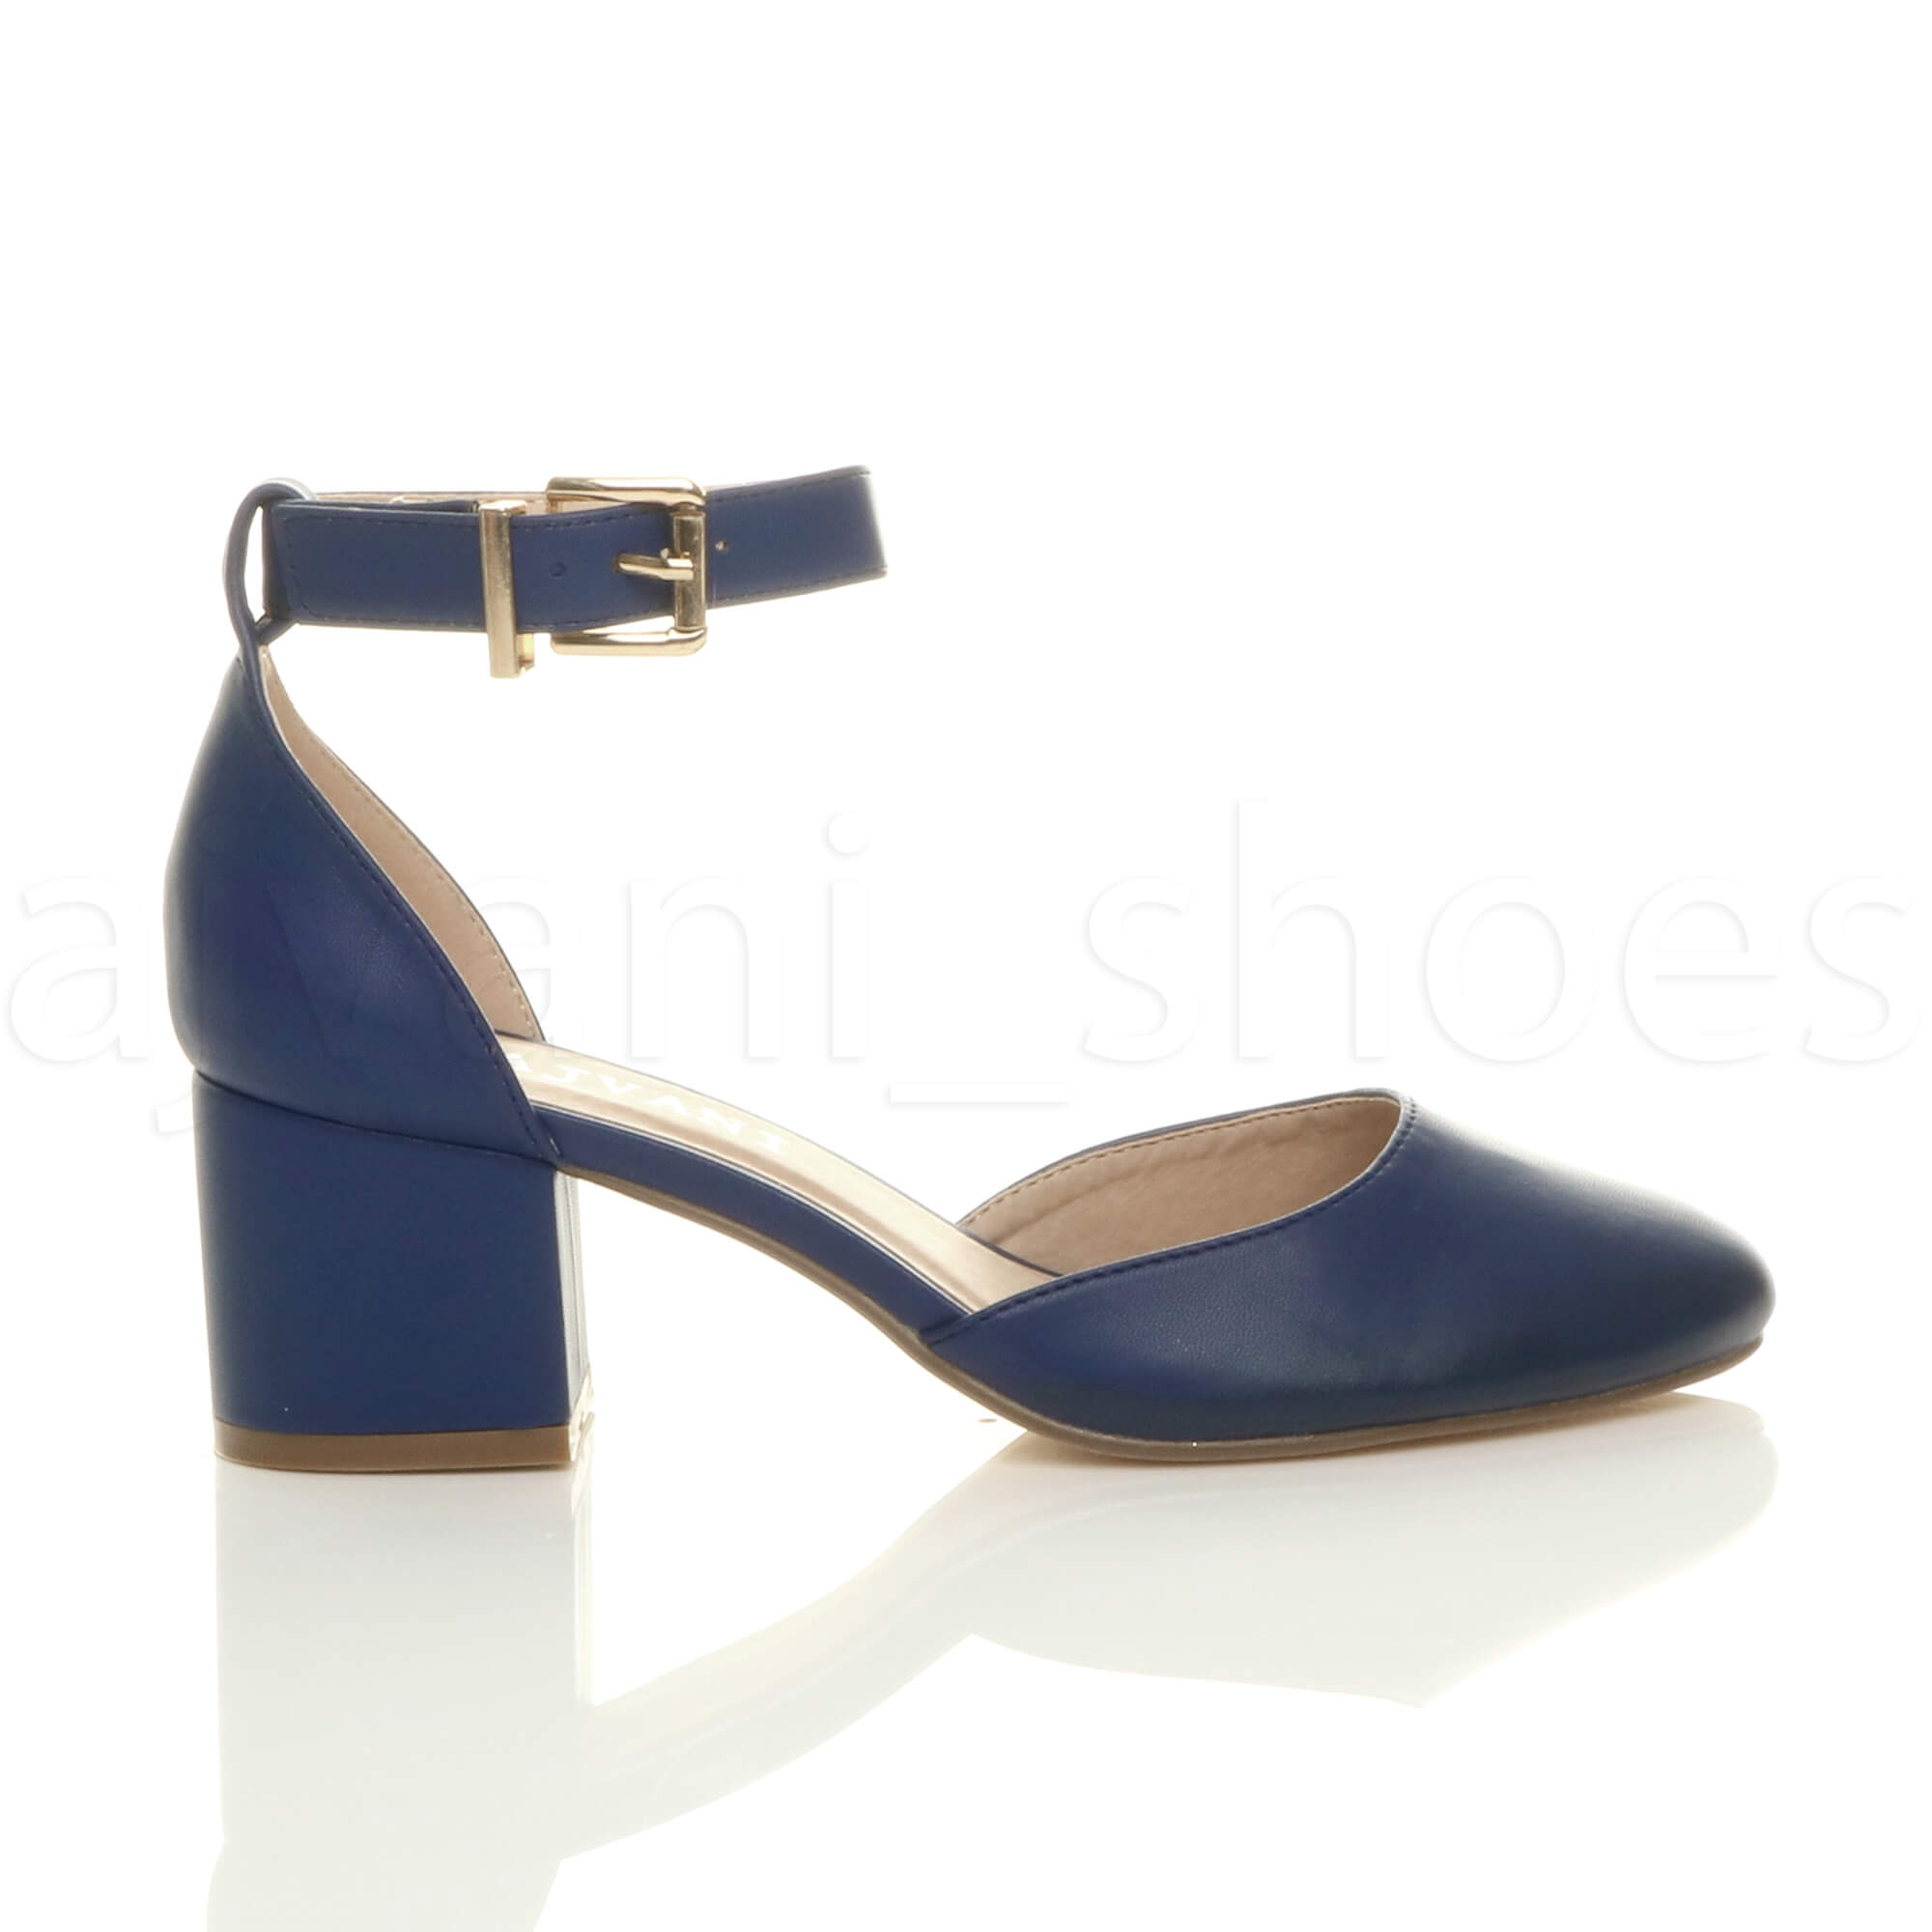 WOMENS-LADIES-LOW-MID-BLOCK-HEEL-ANKLE-STRAP-MARY-JANE-COURT-SHOES-SANDALS-SIZE thumbnail 91